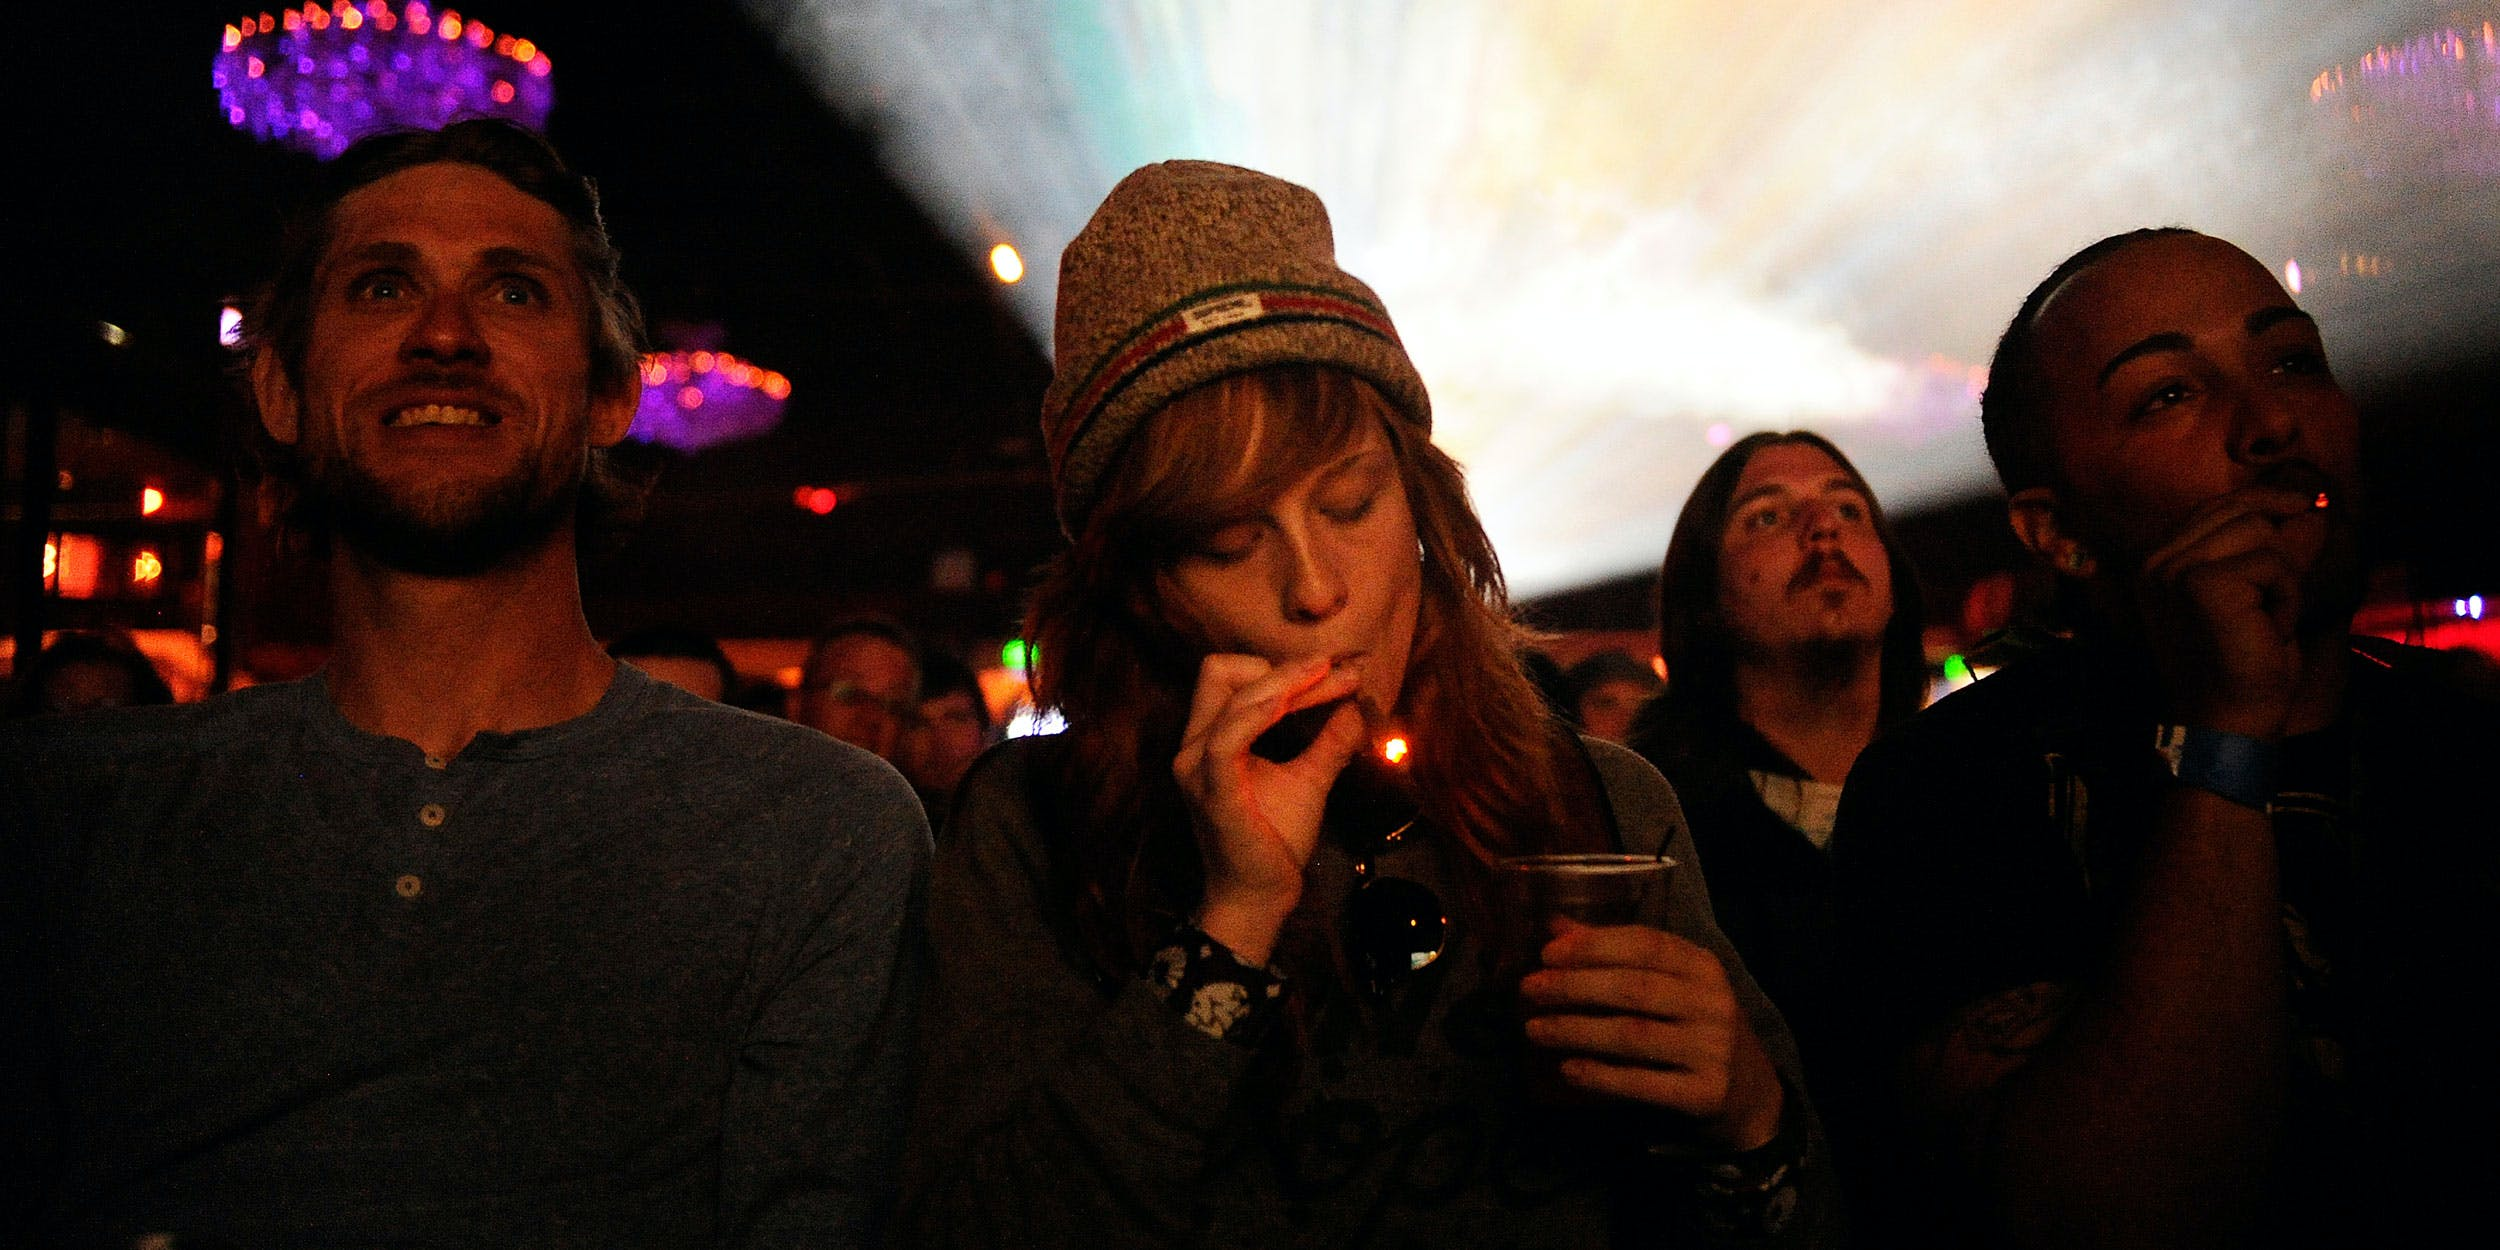 """Caiti Beckwith of Denver, Colorado smokes a joint while watching the Snoop Lion documentary Reincarnated during the first ever """"Green Carpet"""" event as a part of the High Times US Cannabis Cup at the Fillmore Auditorium on April 19, 2013 in Denver, Colorado. While cannabis is legal in Colorado and other states, it's still not permitted at most events. Outside Lands in California just announced it will be welcoming Cailfornia's cannabis industry with an education section called """"Grass Lands."""""""